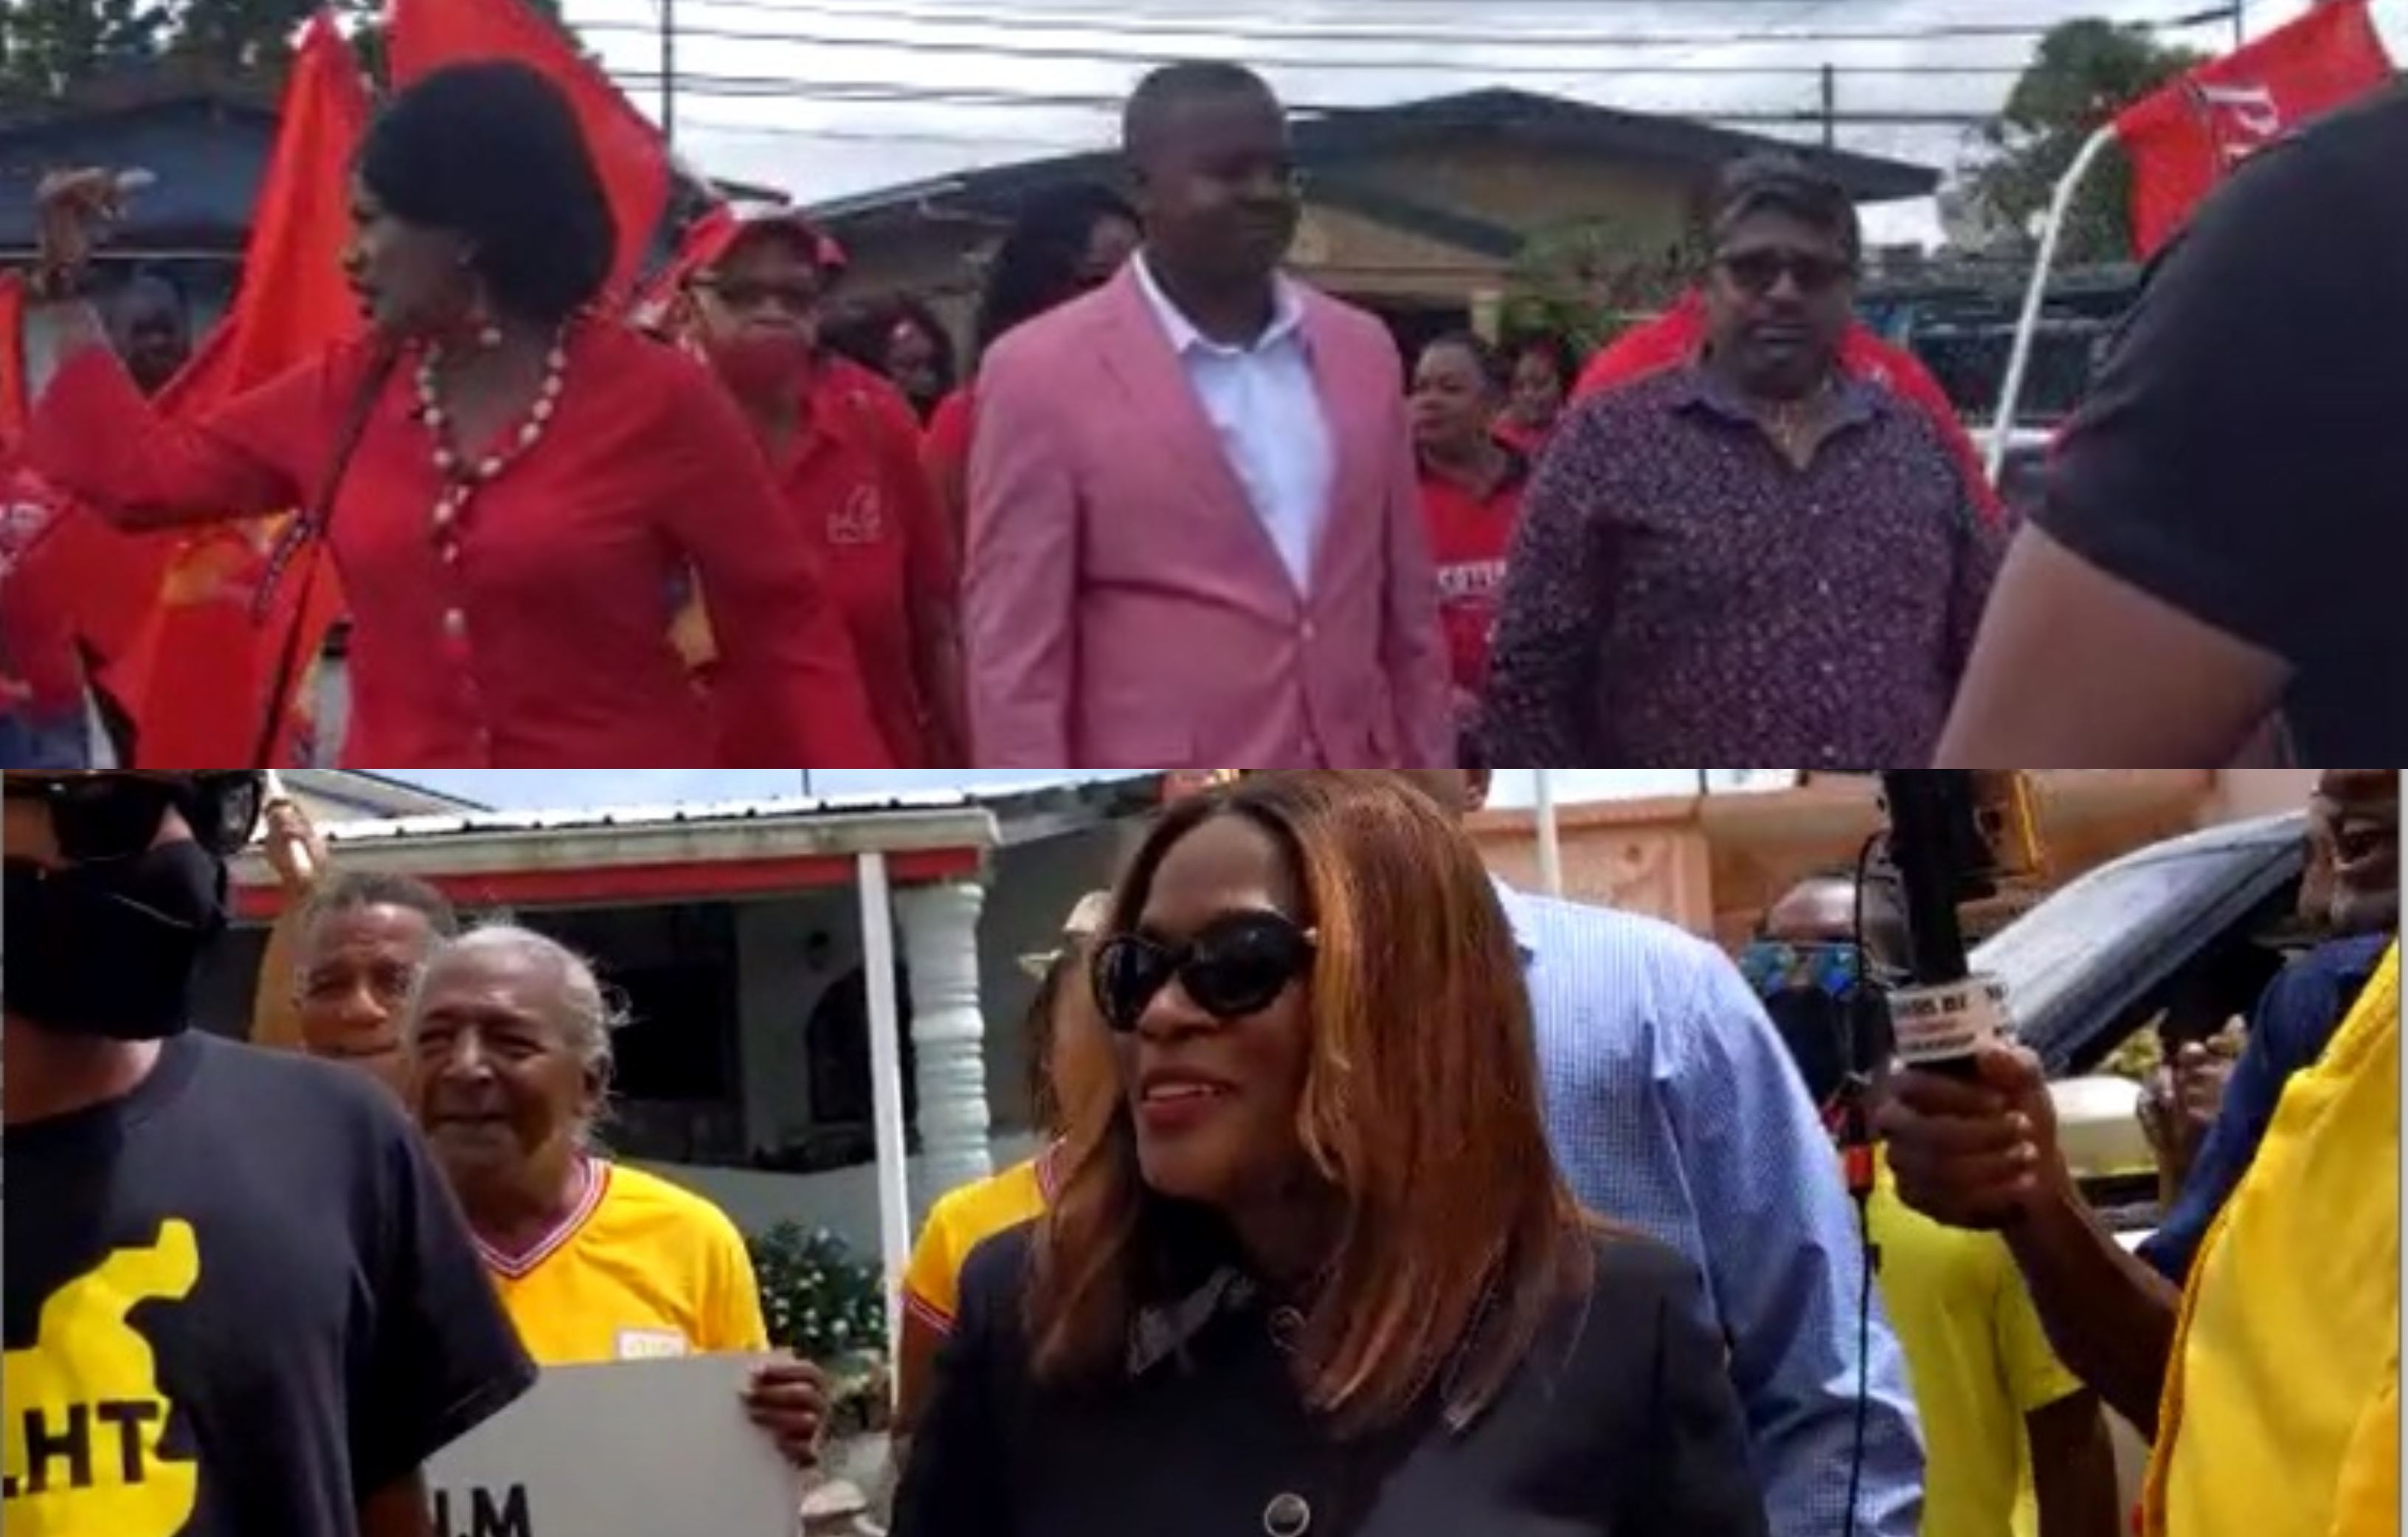 Above: PNM candidate Foster Cummings.